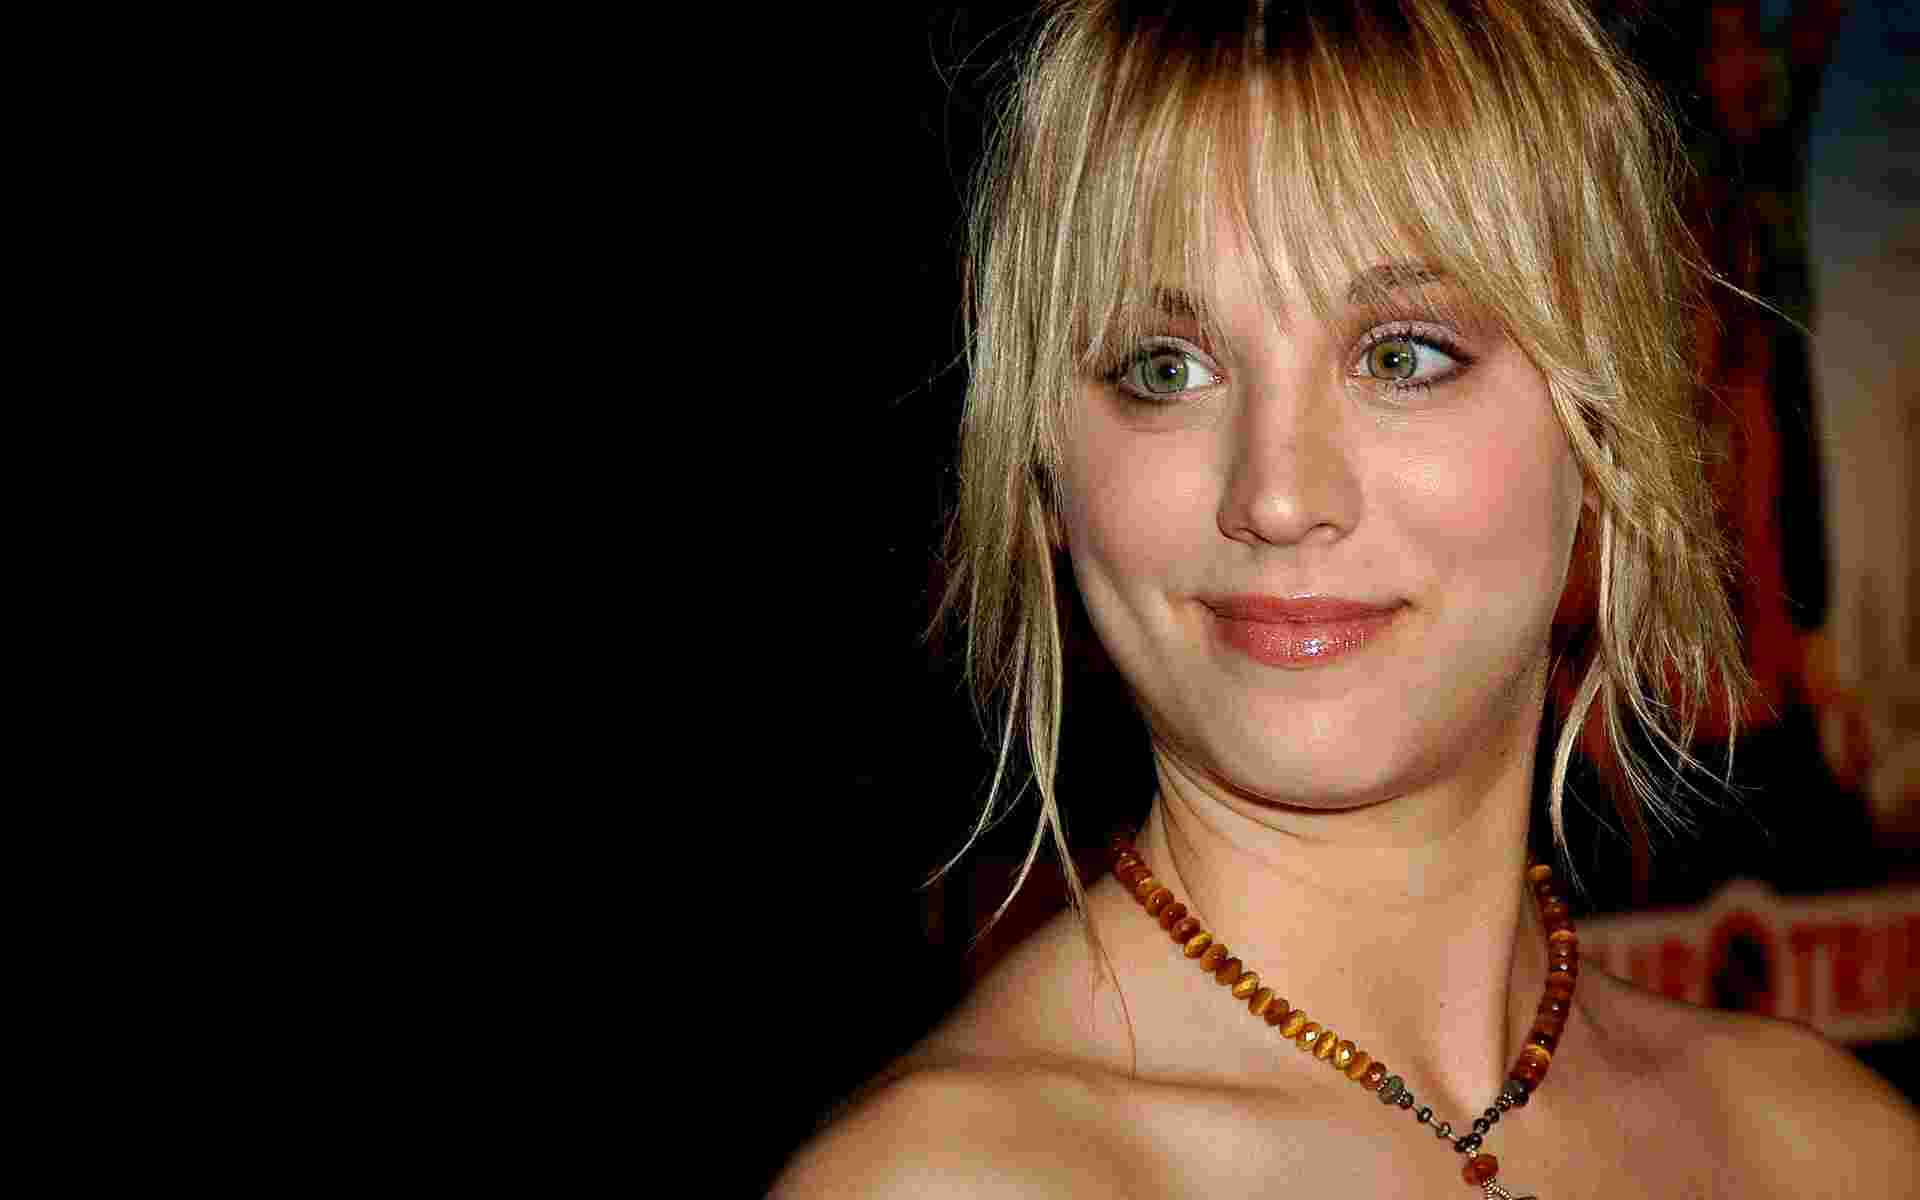 Kaley Cuoco 009 wallpaper   Kaley Cuoco   Celebrities Girls 1920x1200